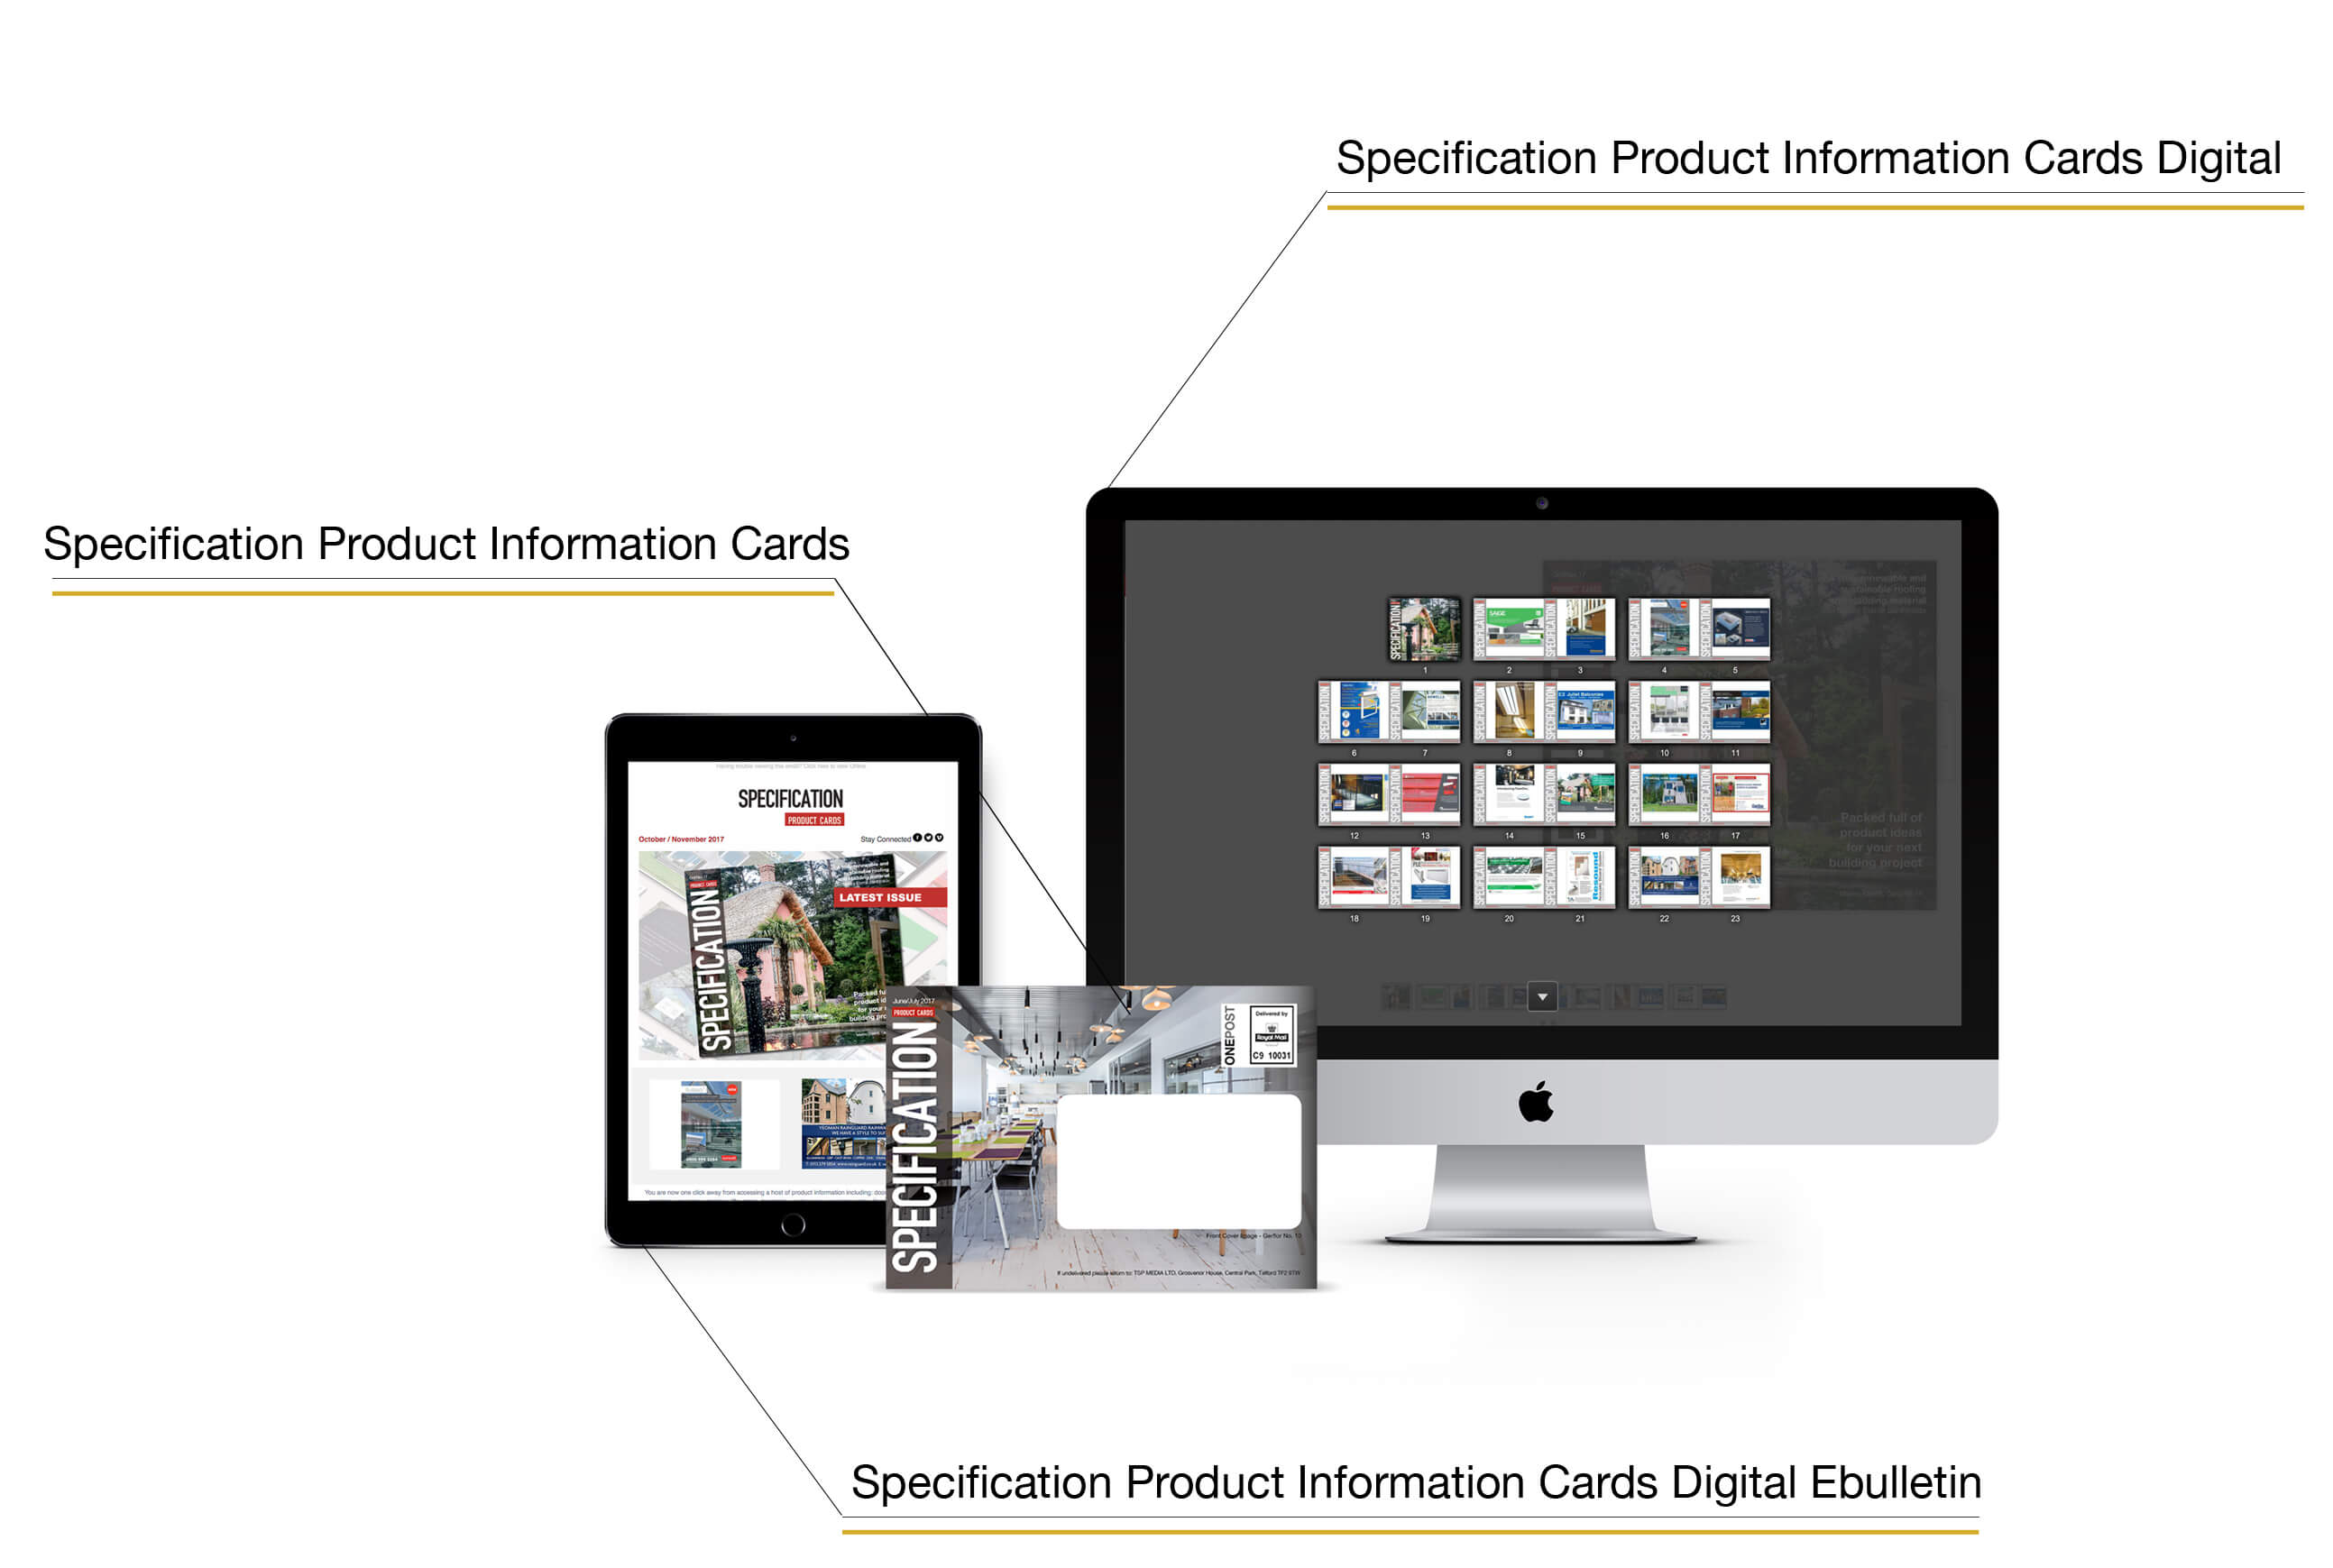 Specification Product Information Cards